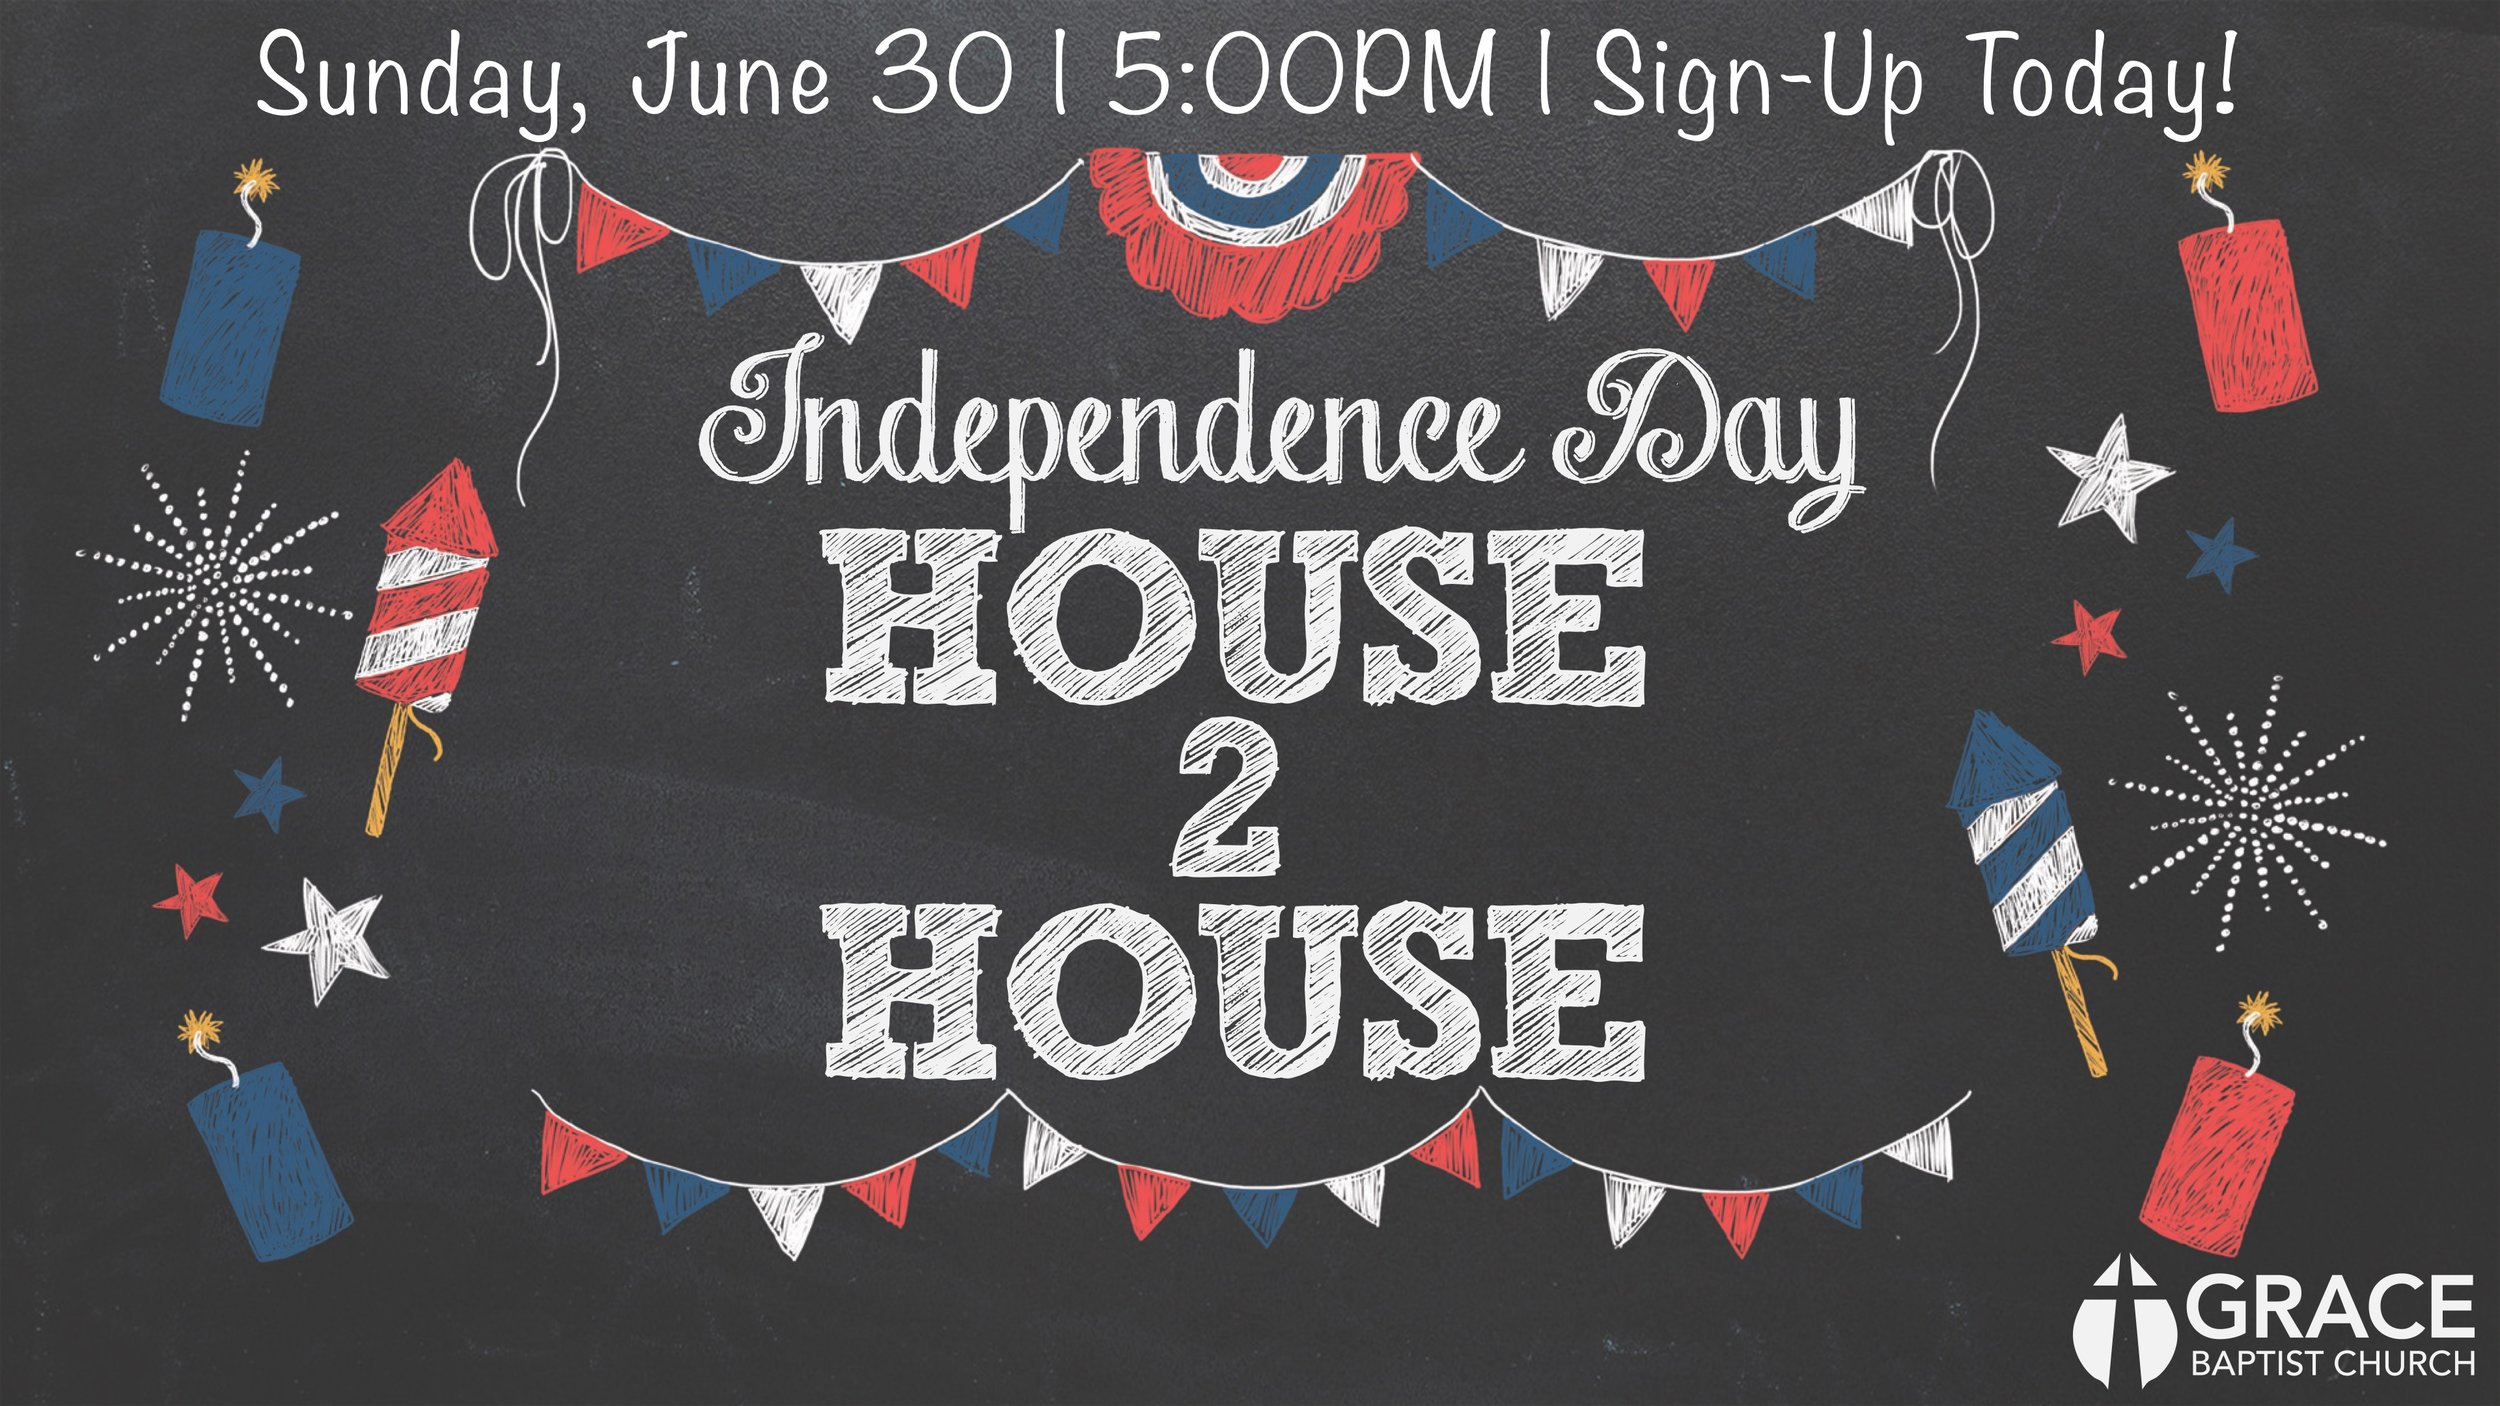 fourth_of_july_house-2-house2019.jpg